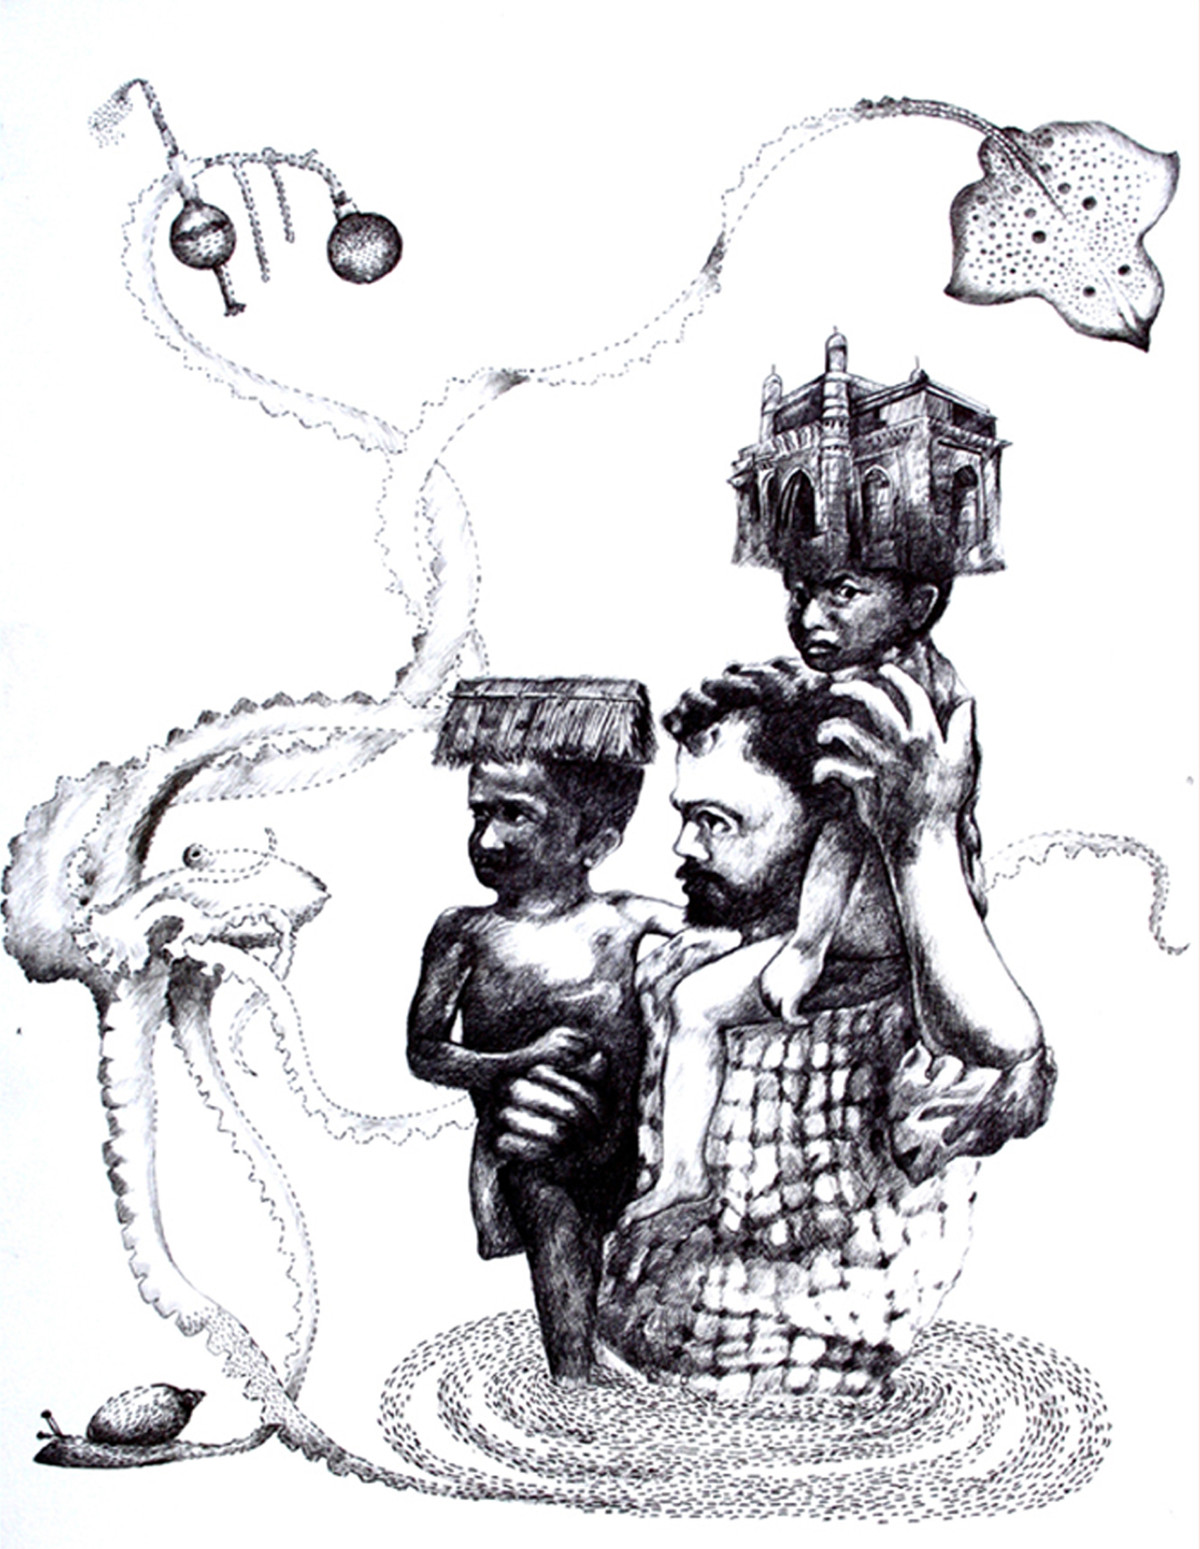 Untitled by Satish Multhalli, Illustration, Illustration Drawing, Ink on Paper, Gray color